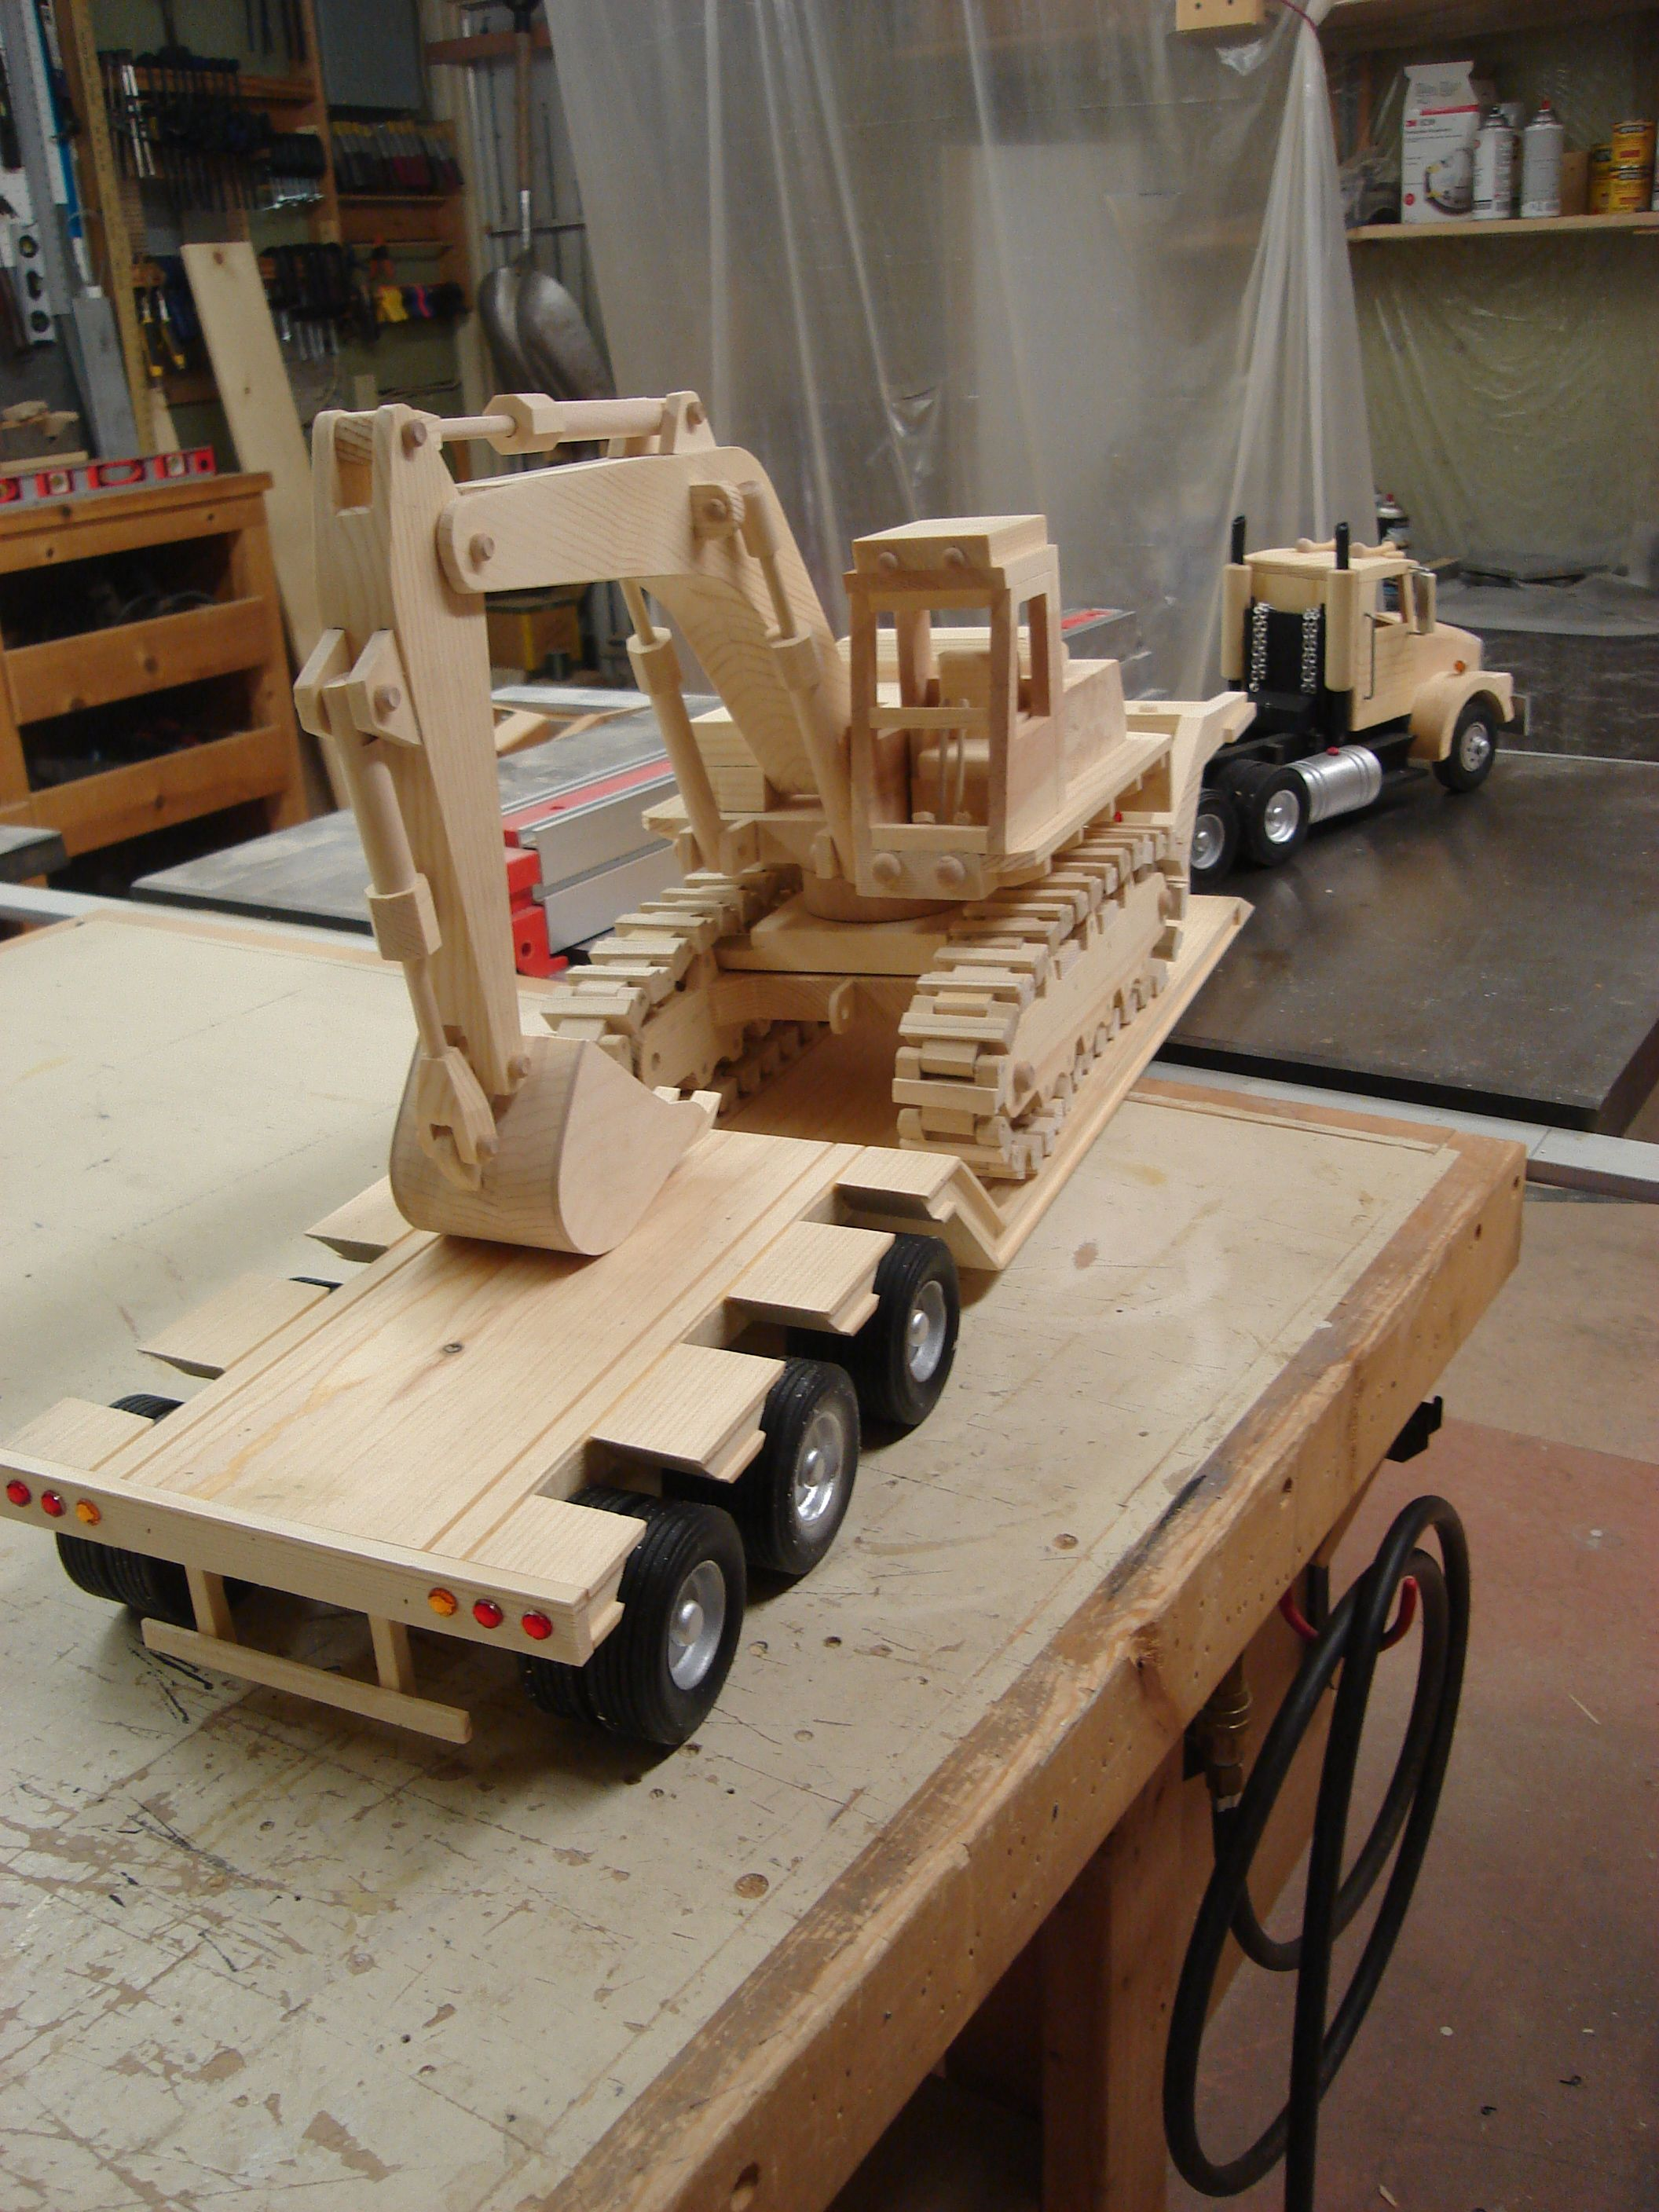 rear view of truck with excavator | wooden trucks and heavy